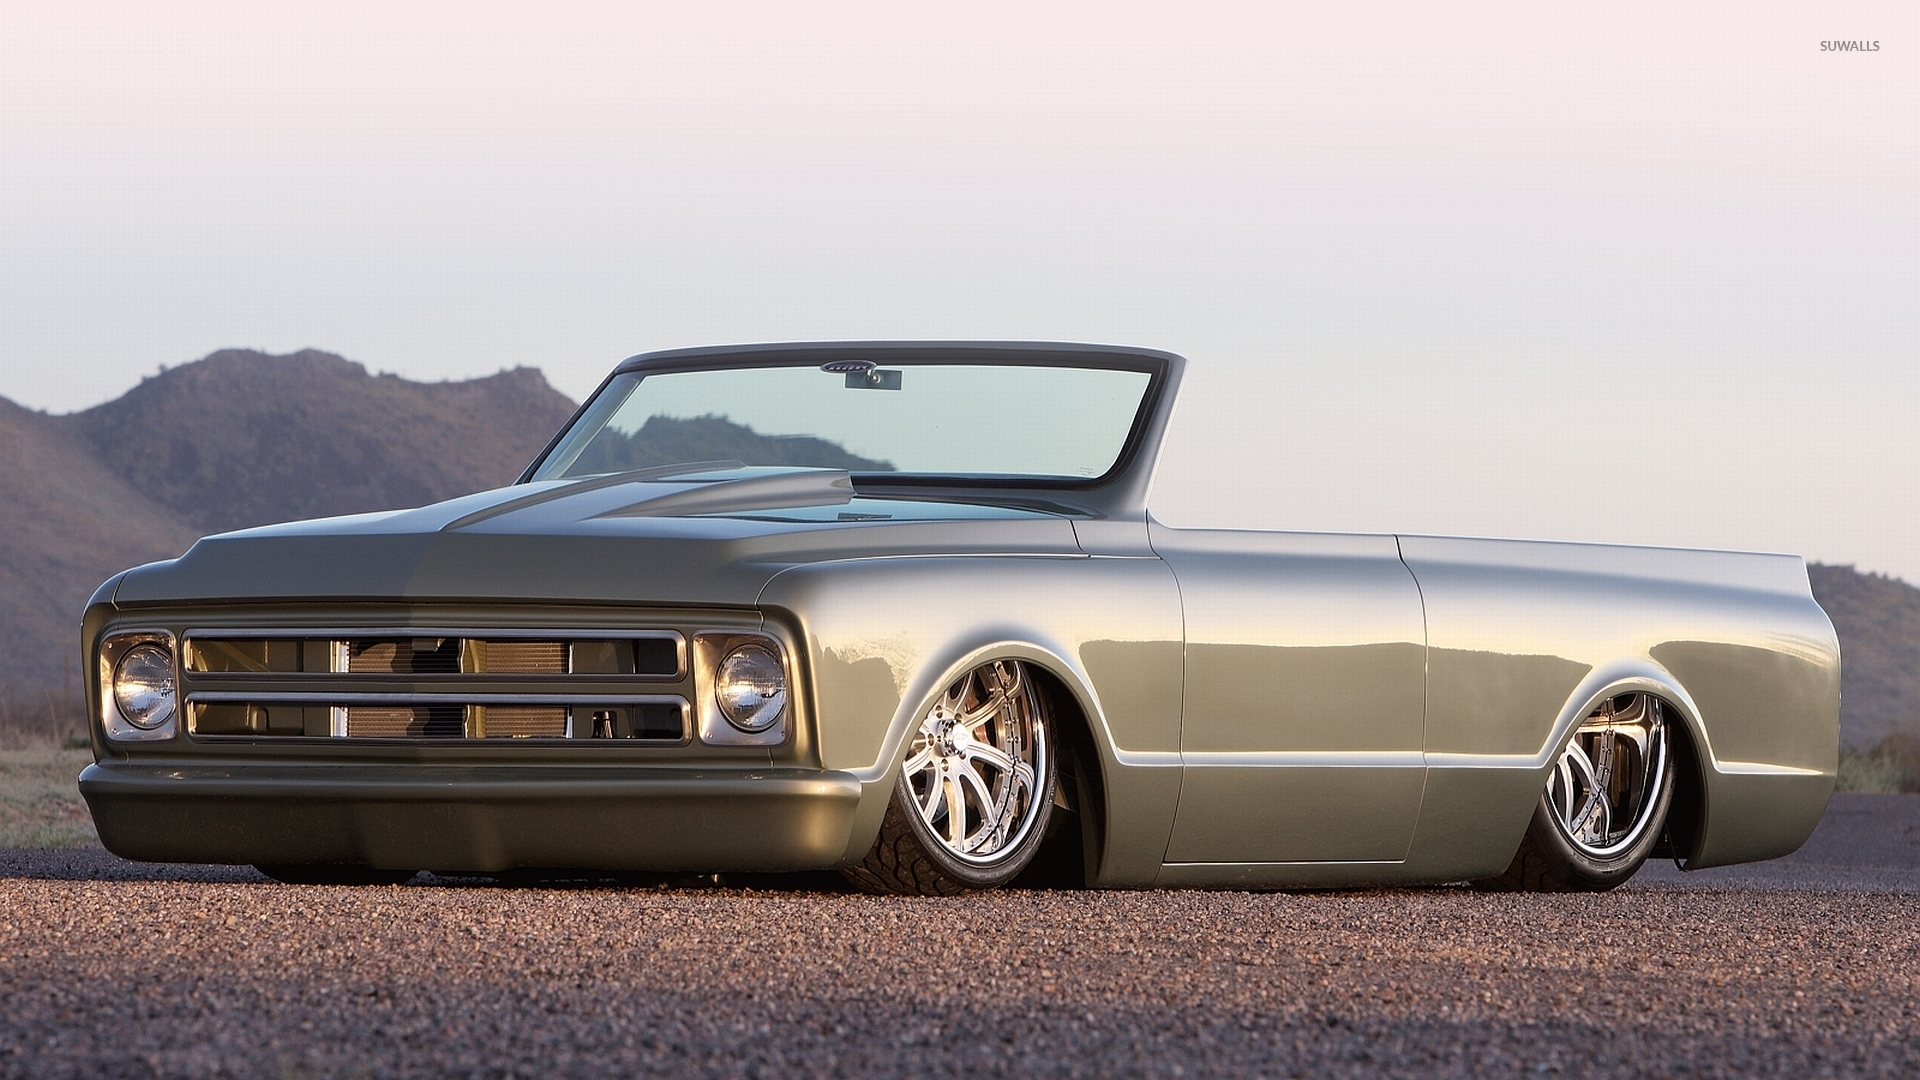 Muscle Car Hd Wallpapers 1080p Chevrolet Lowrider Wallpaper Car Wallpapers 33686